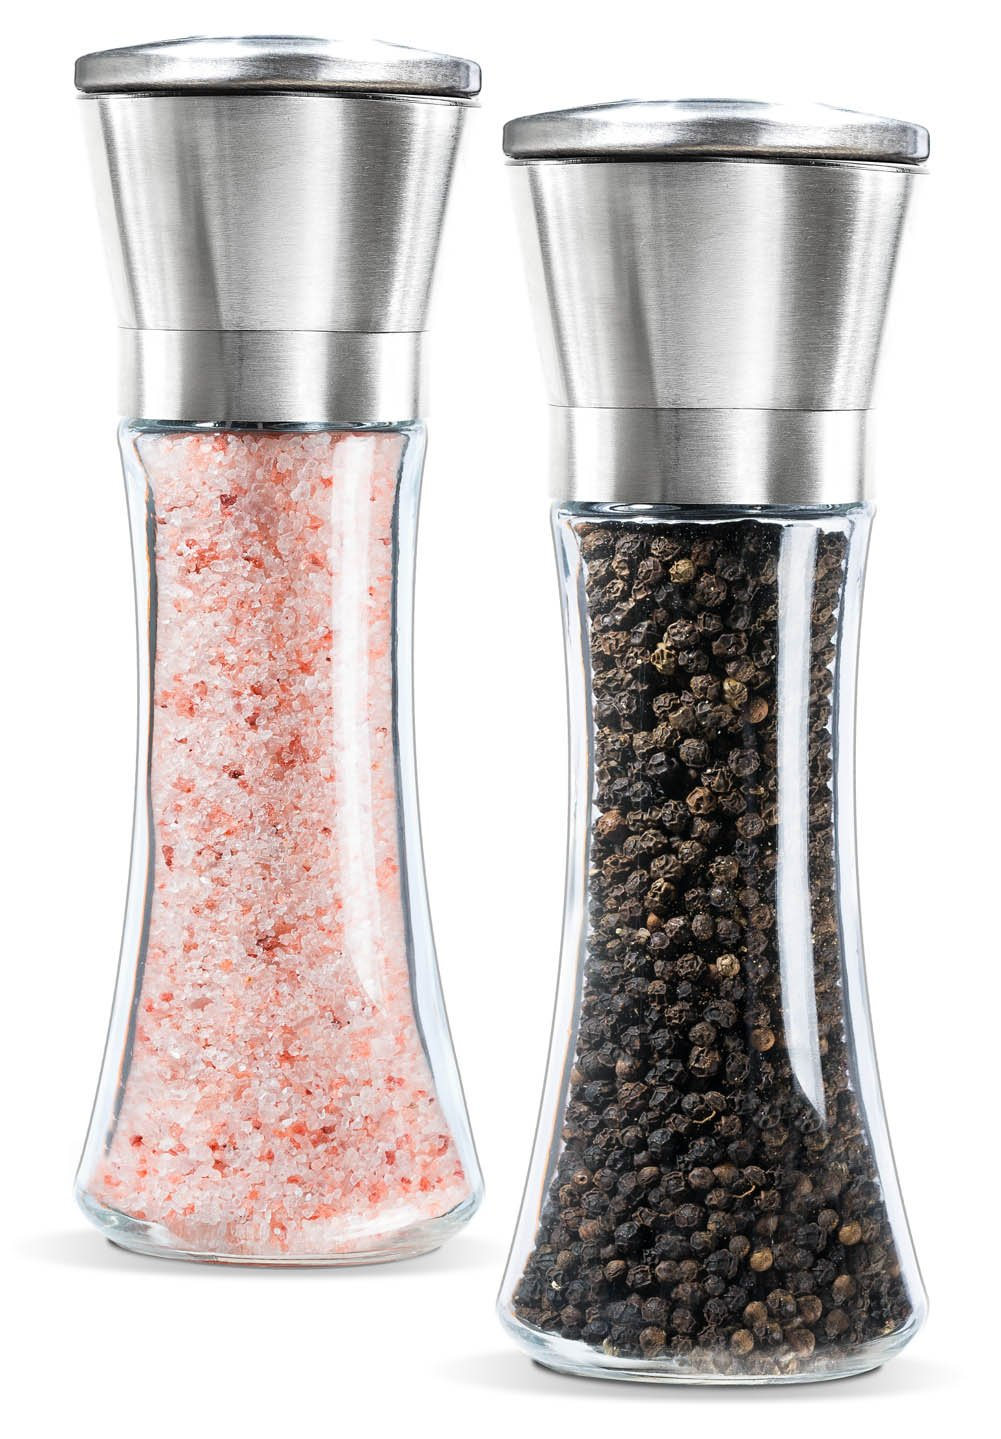 Levav Premium Salt and Pepper Grinder Set of 2- Brushed Stainless Stell Pepper Mill and Salt Mil, Glass Body, Size Grade adjustable ceramic rotor-salt and pepper shakers (tall)